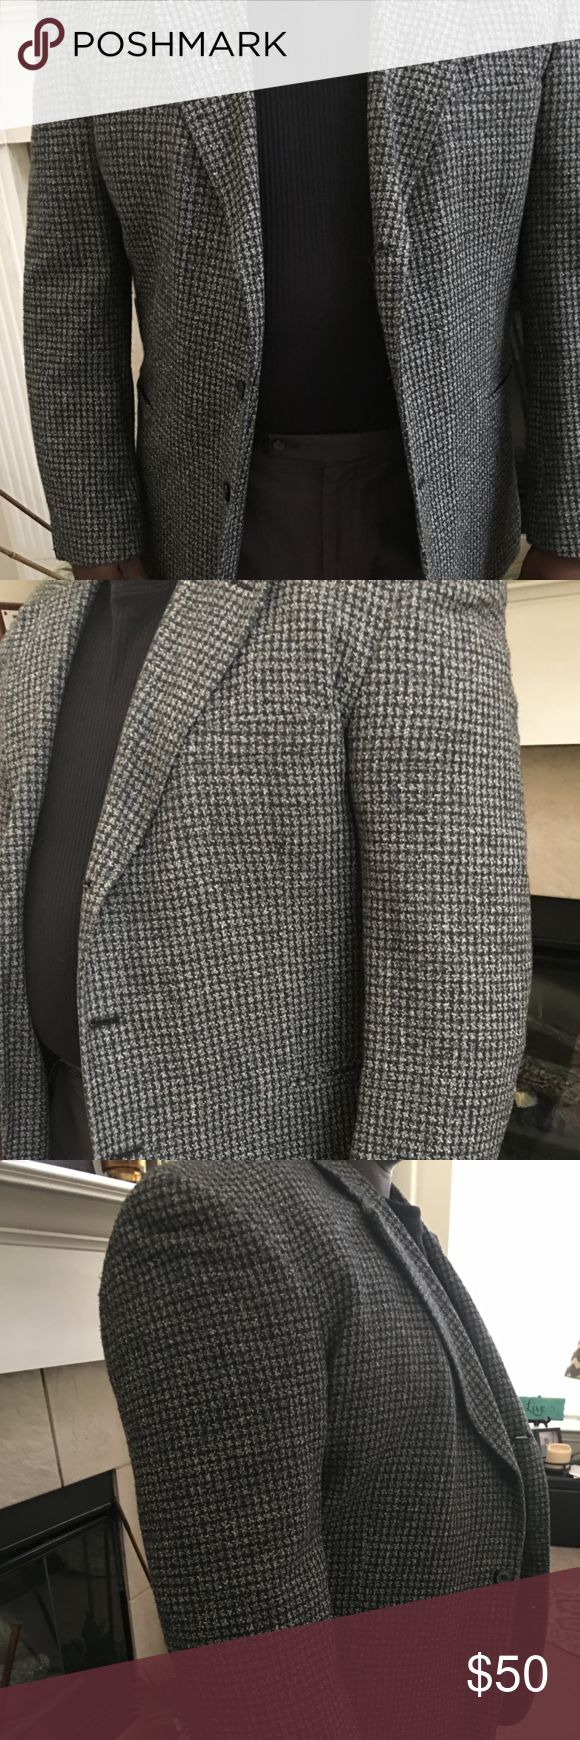 Mens's Sport's Jacket (Tweed) By R. Raspinni Great men's jacket that can be worn all year long. 85% silk, 15% wool, Size: 46 Regular, Dry Clean only. Worn very infrequently R. Raspinni UOMO Suits & Blazers